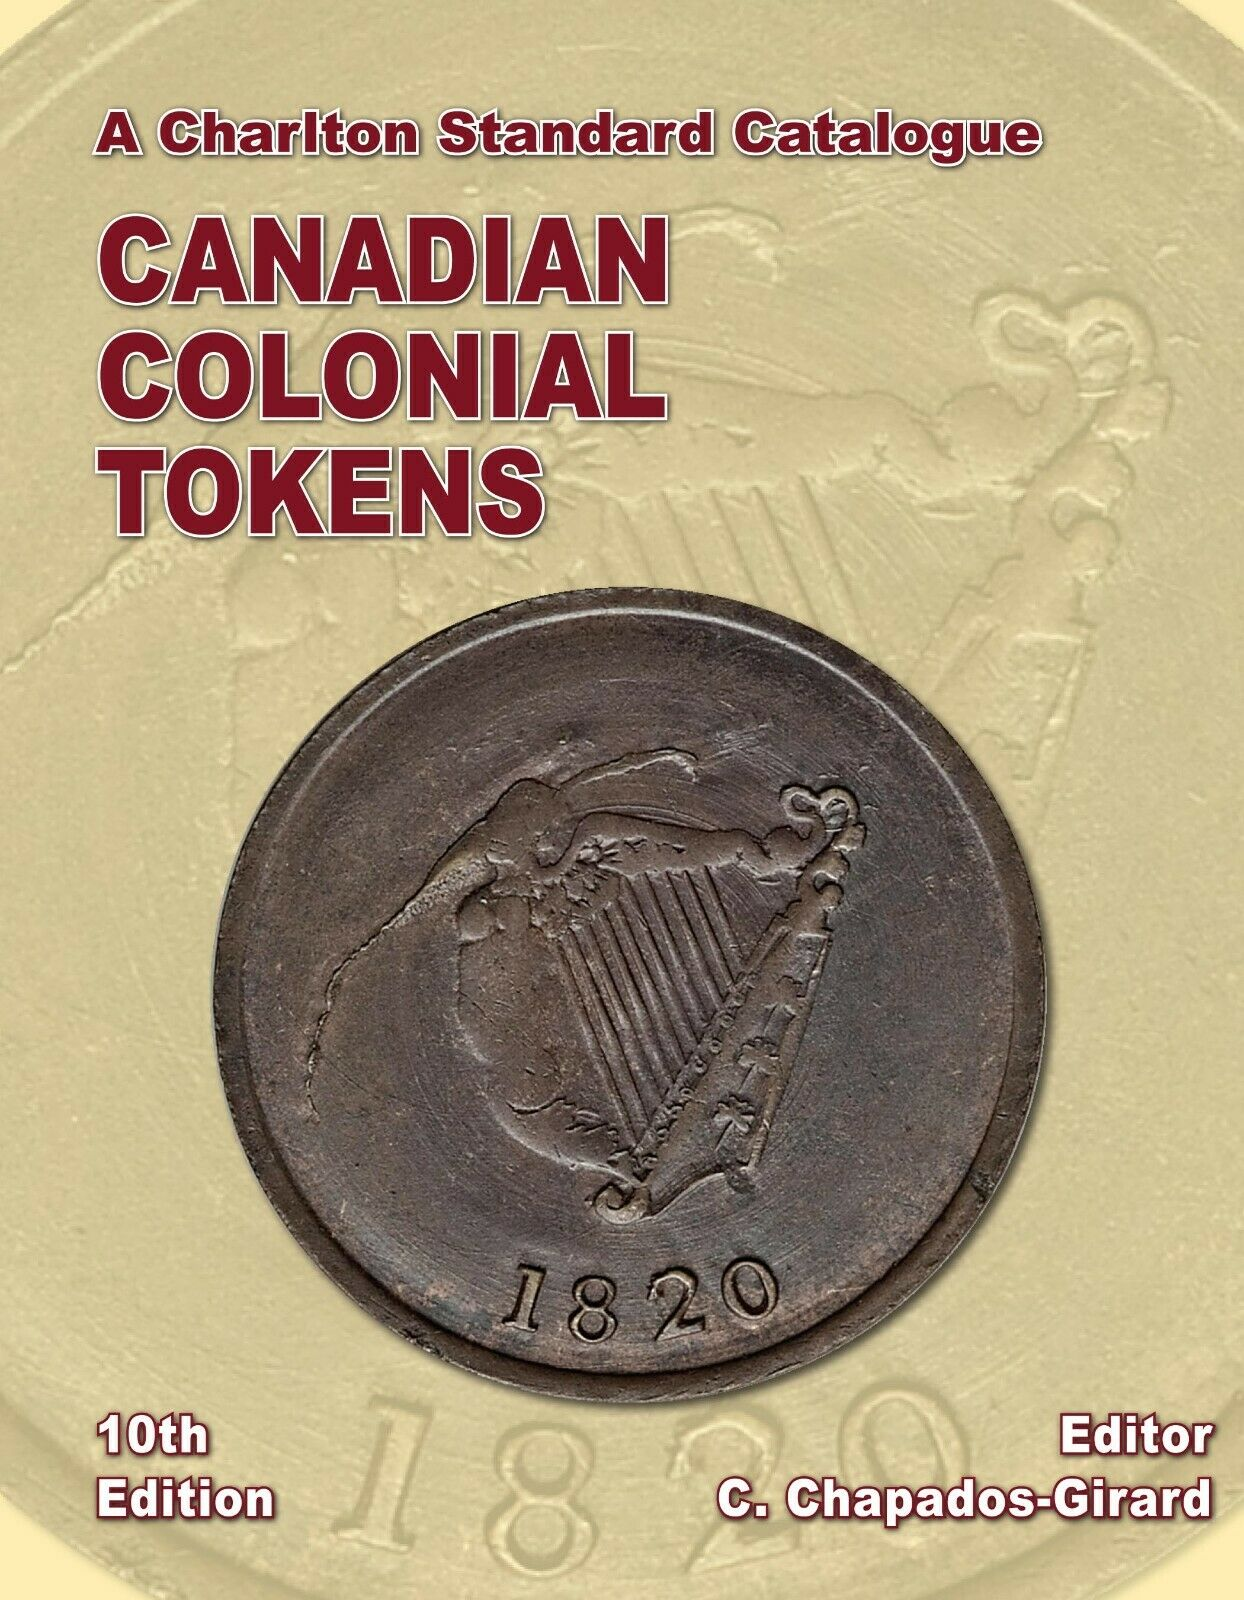 Canadian Colonial Tokens 10th Edition - Charlton Standard Catalogue